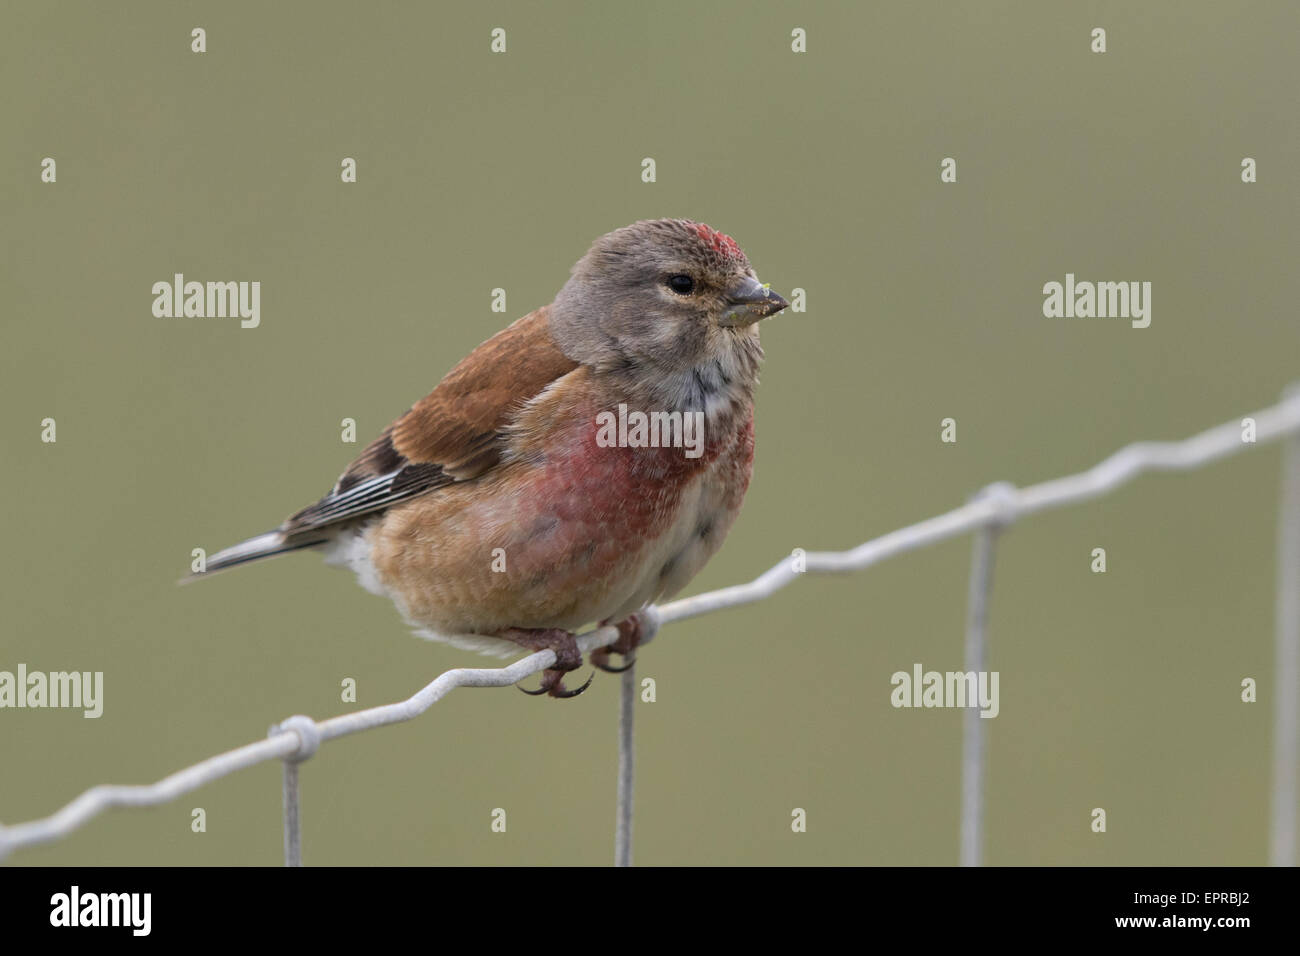 male Eurasian Linnet (Carduelis cannabina) perched on a wire fence - Stock Image